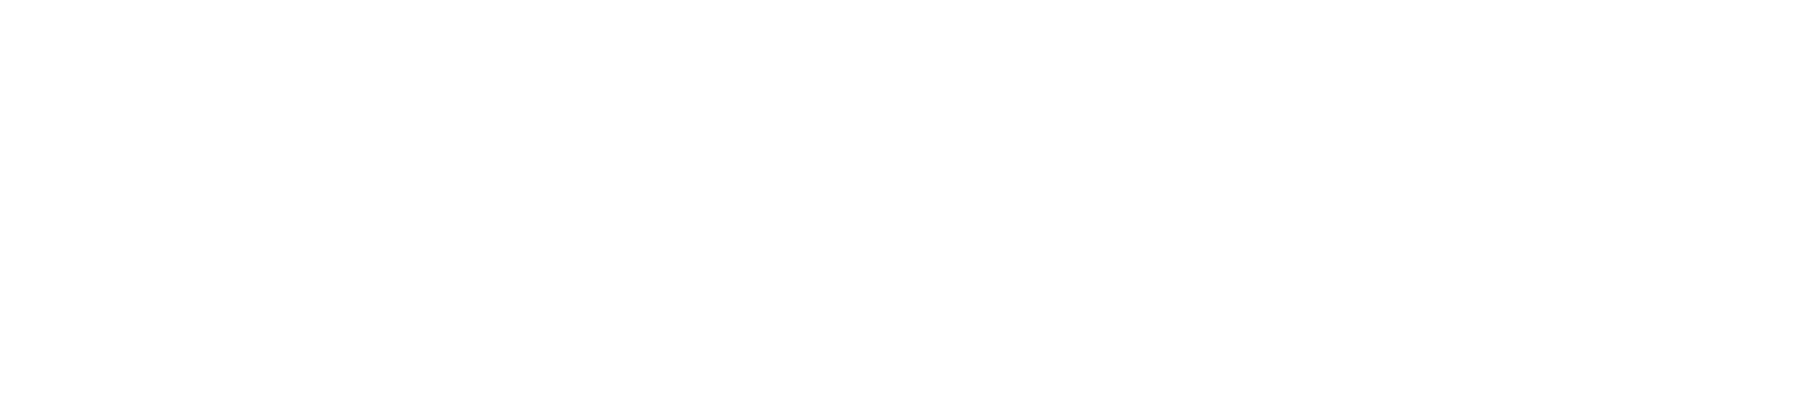 _2019_west_wall_logo_1800px_2019.png